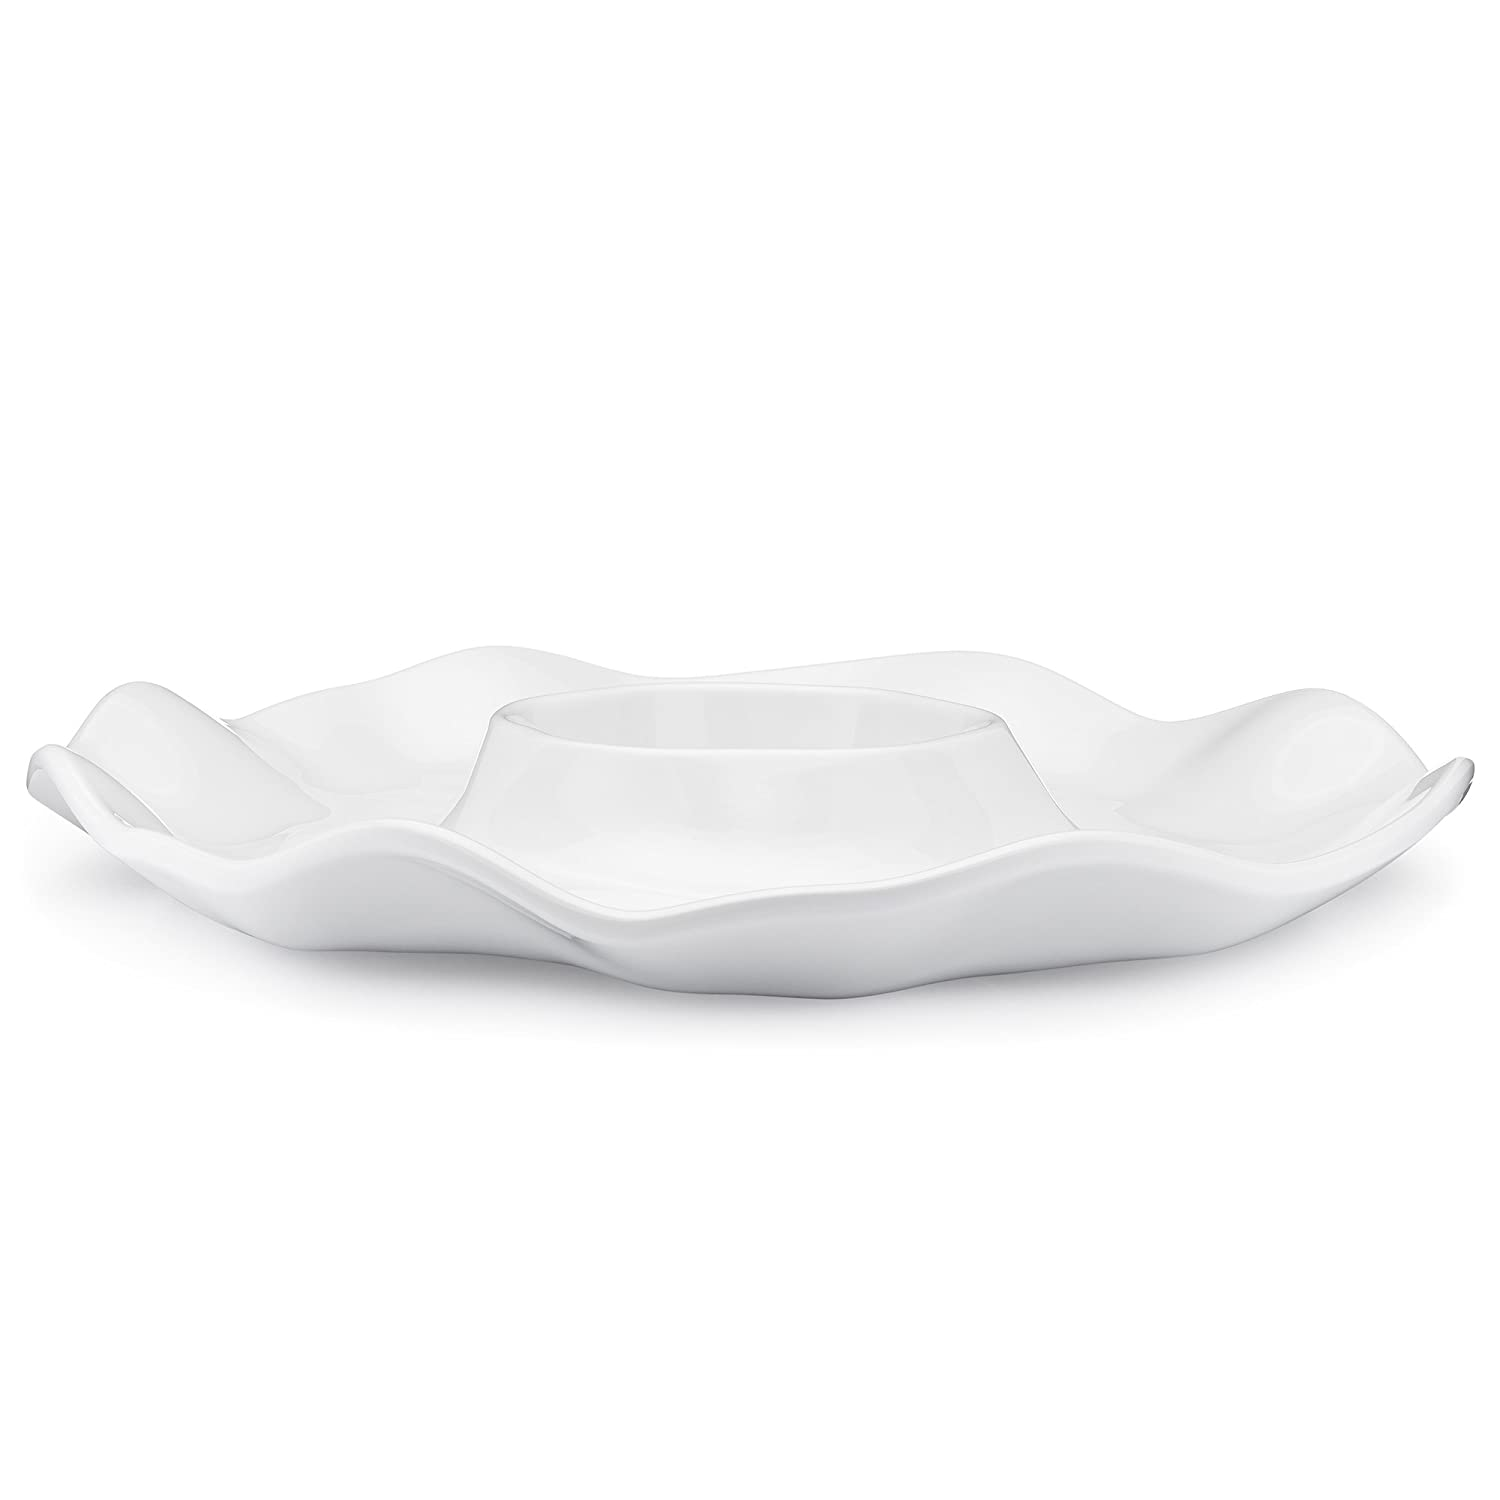 Q Squared Ruffle in Round BPA-Free Melamine Small Oval Platter White 14-Inches by 10-Inches